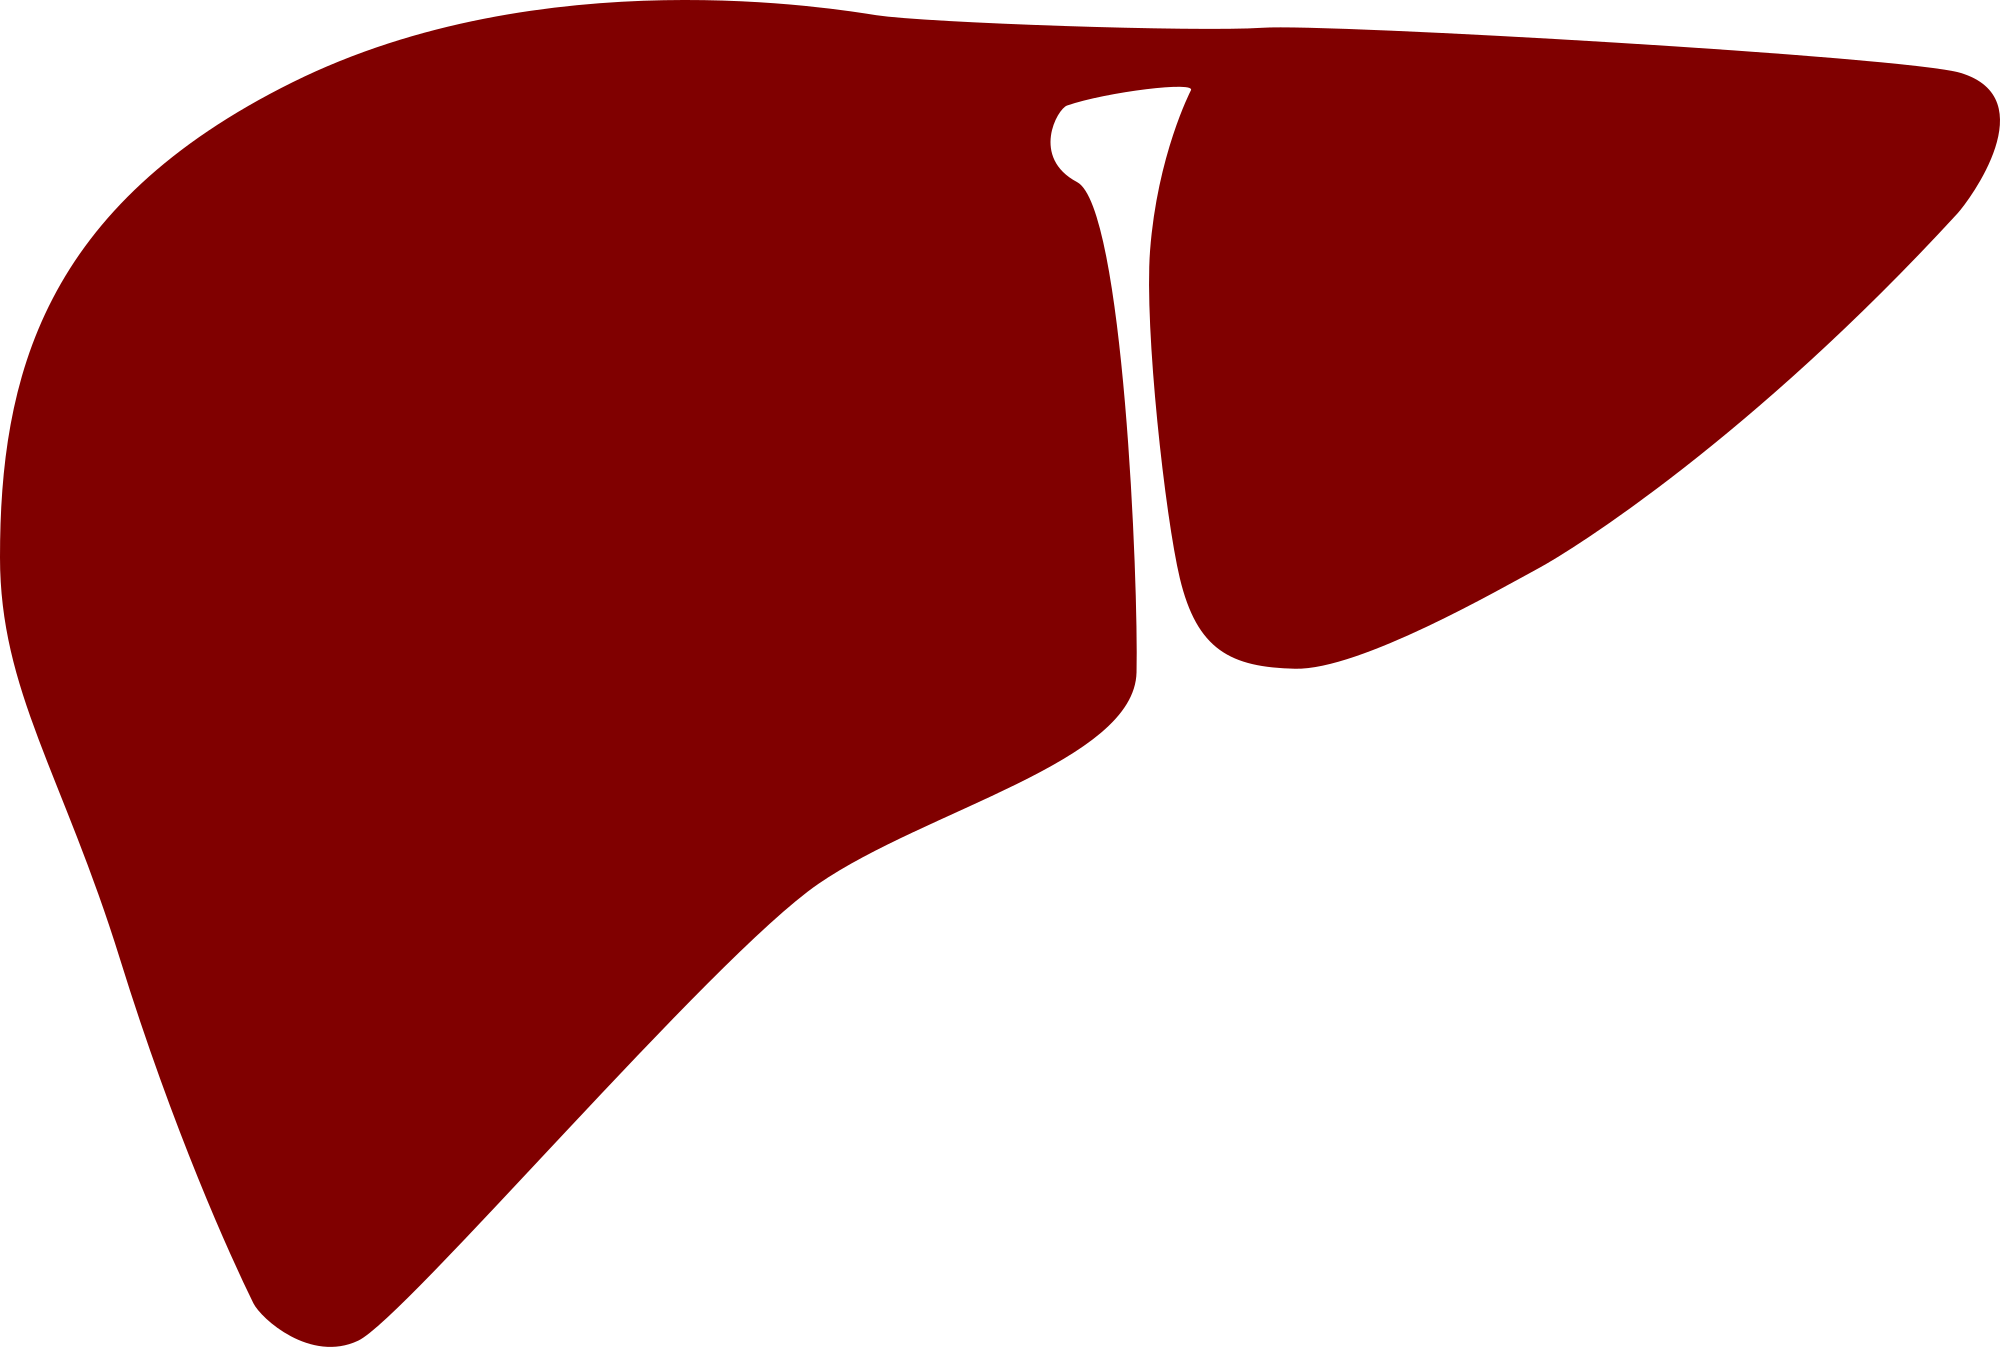 image transparent Liver clipart realistic. Free download best on.